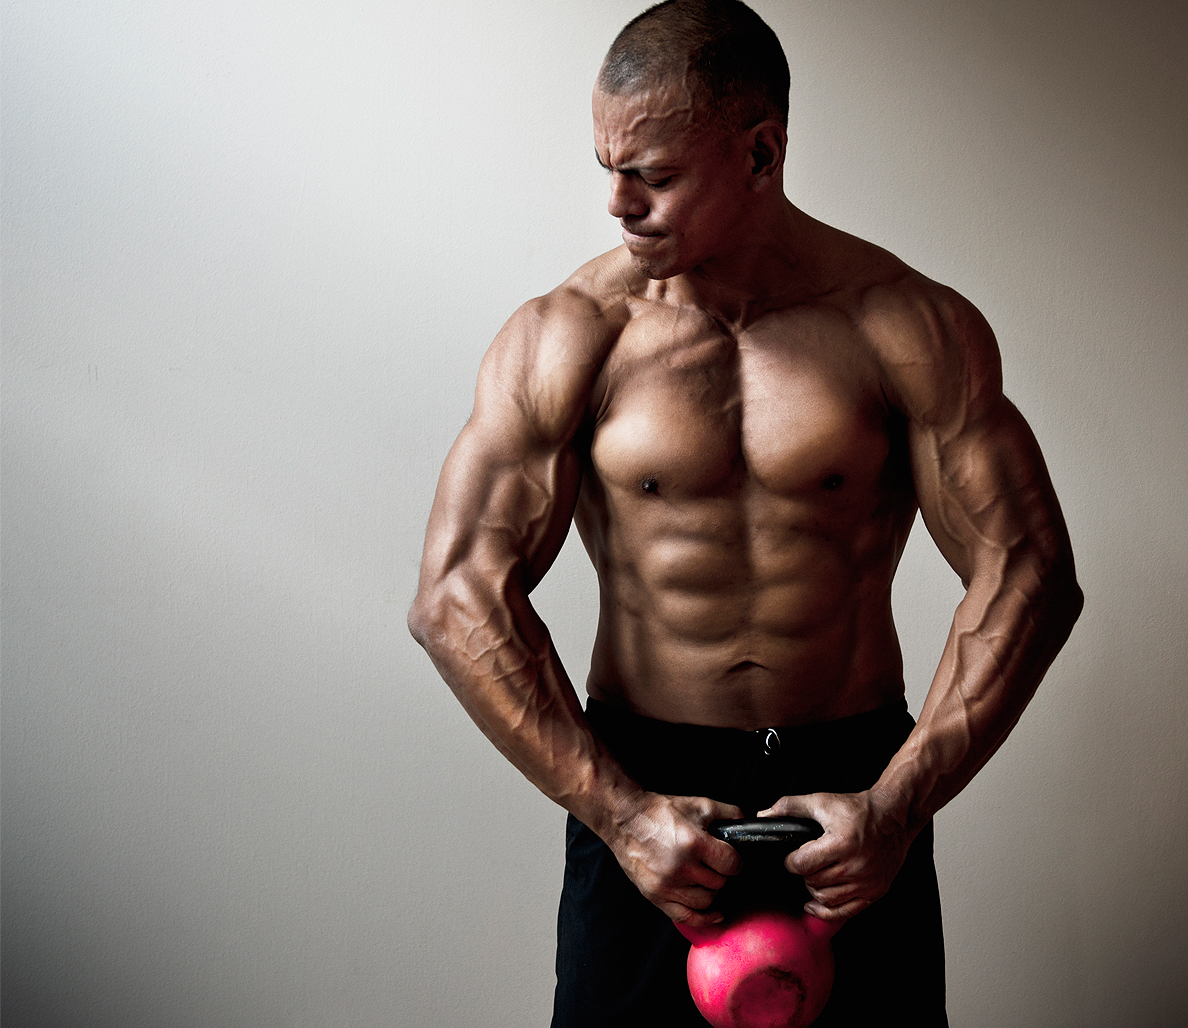 The Best Arm Workout in Under 10 Minutes